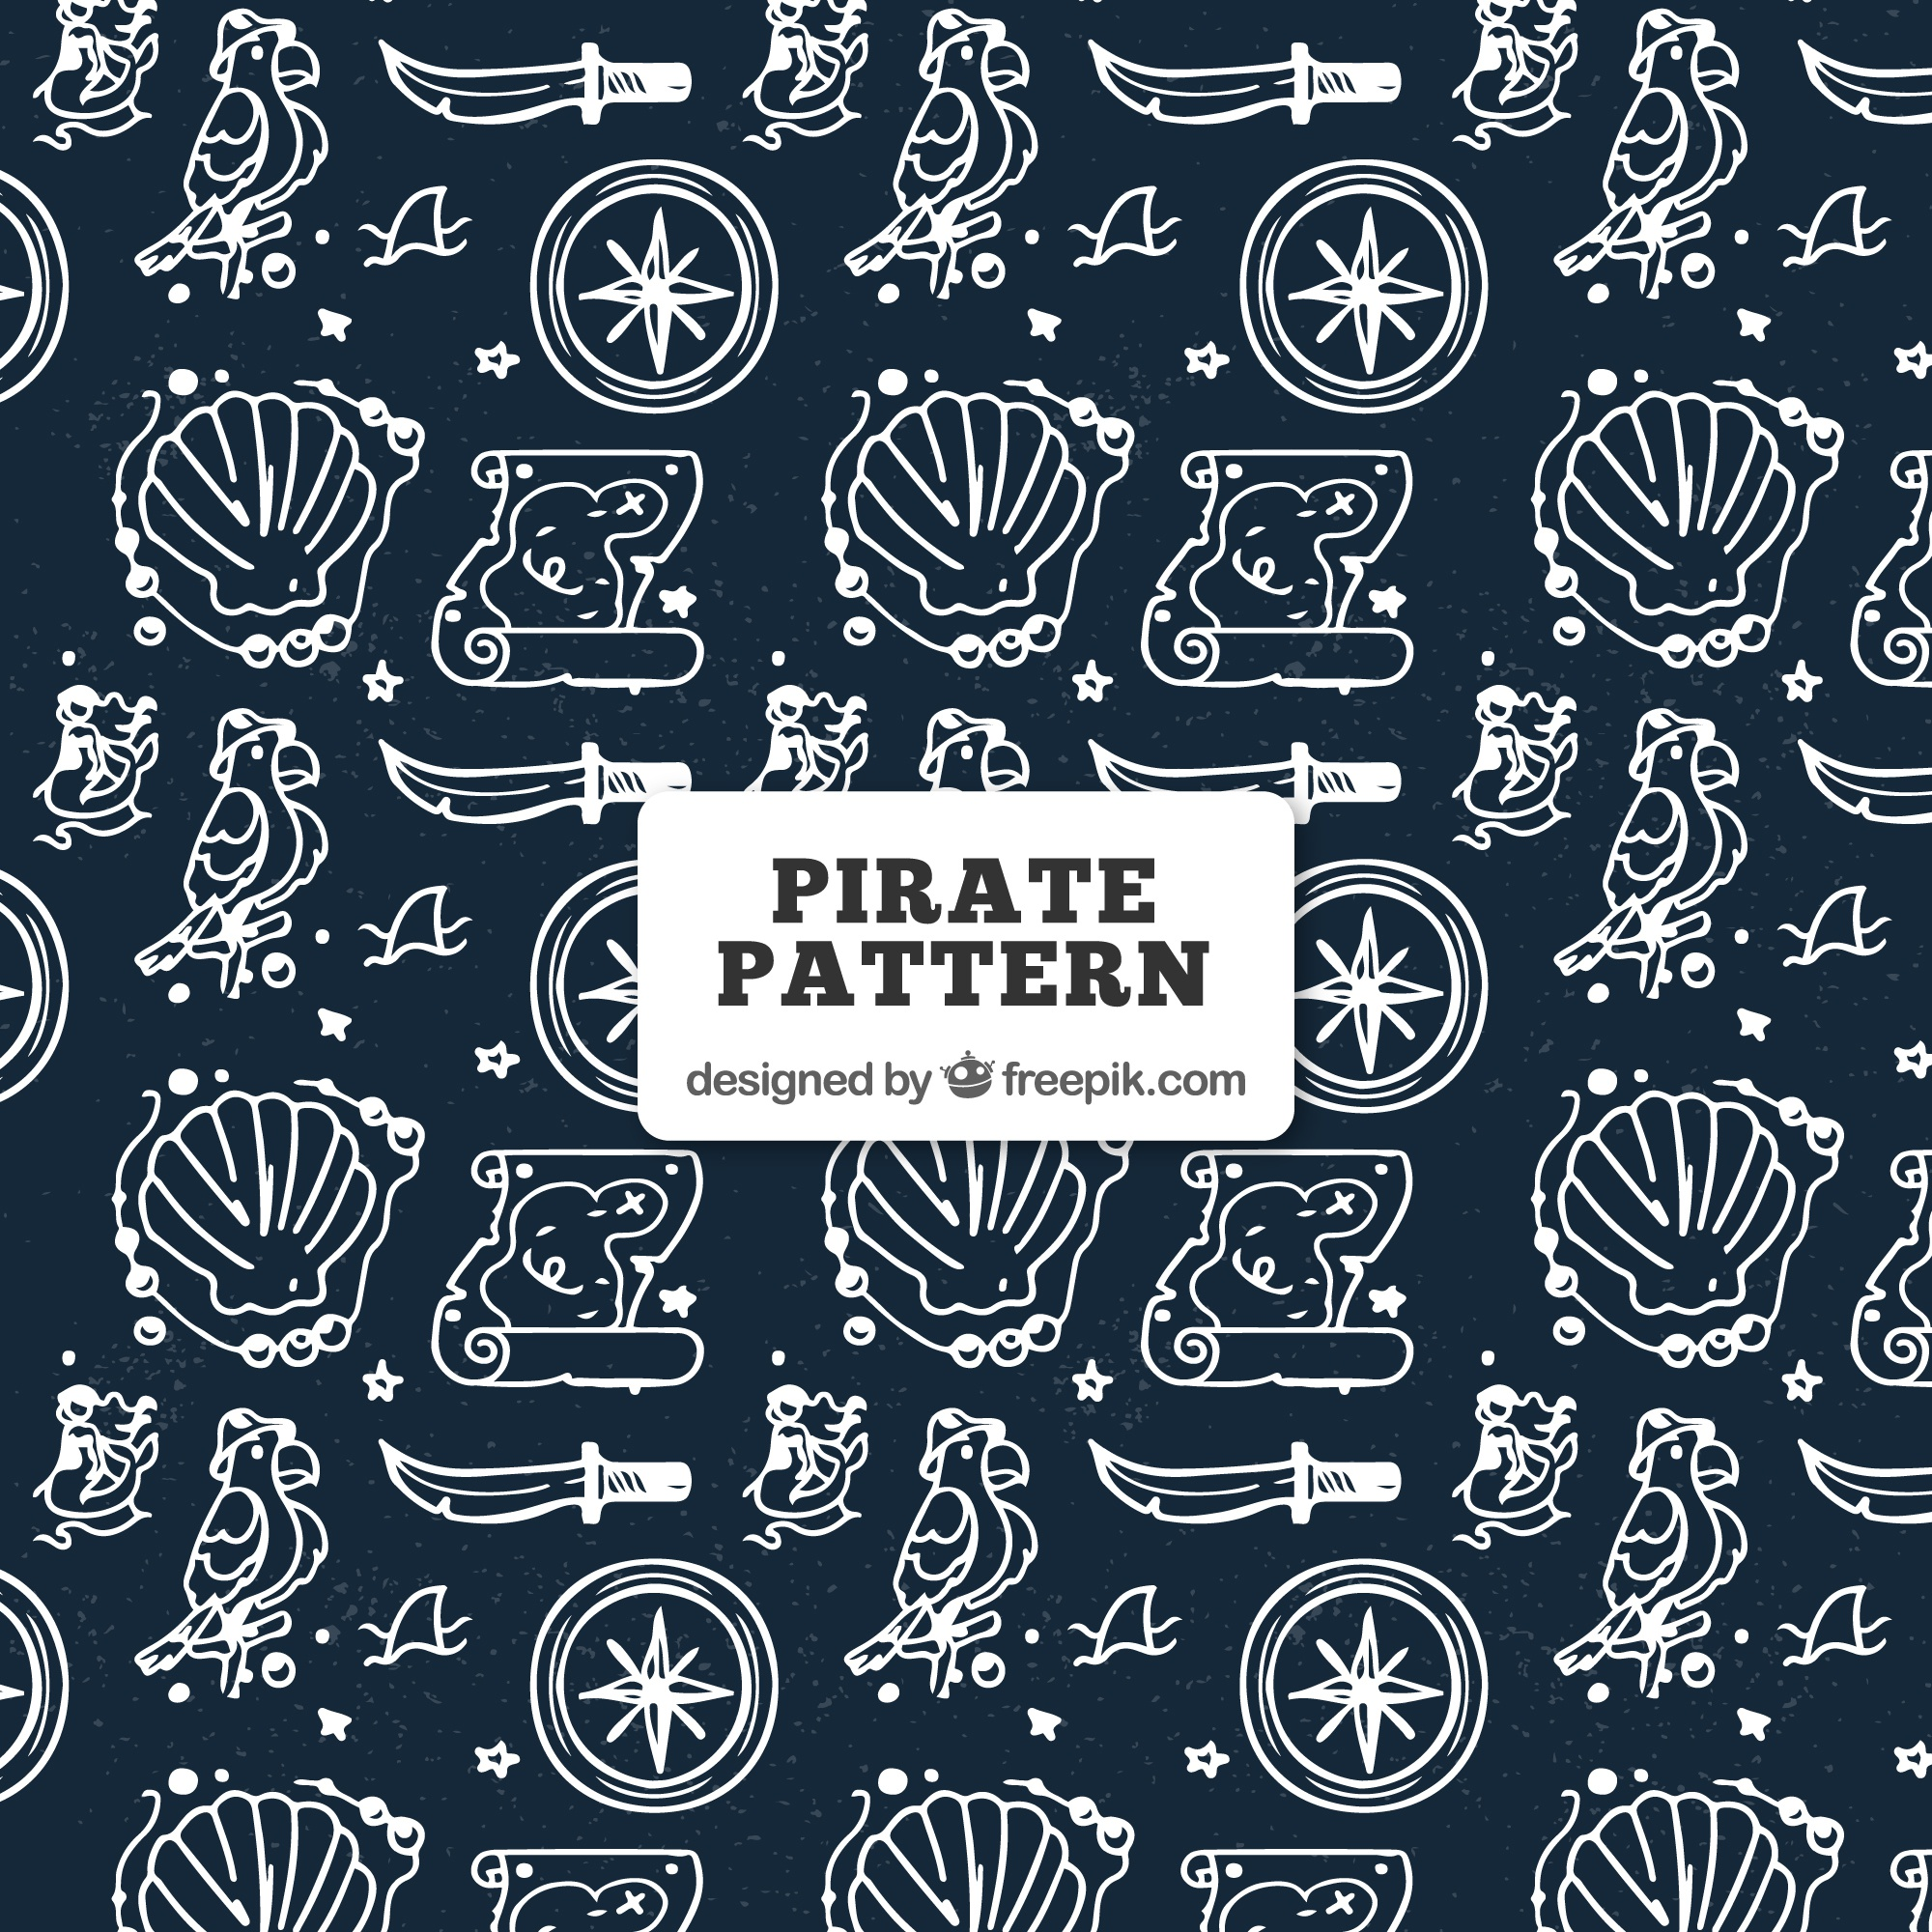 Pattern with hand drawn pirate objects